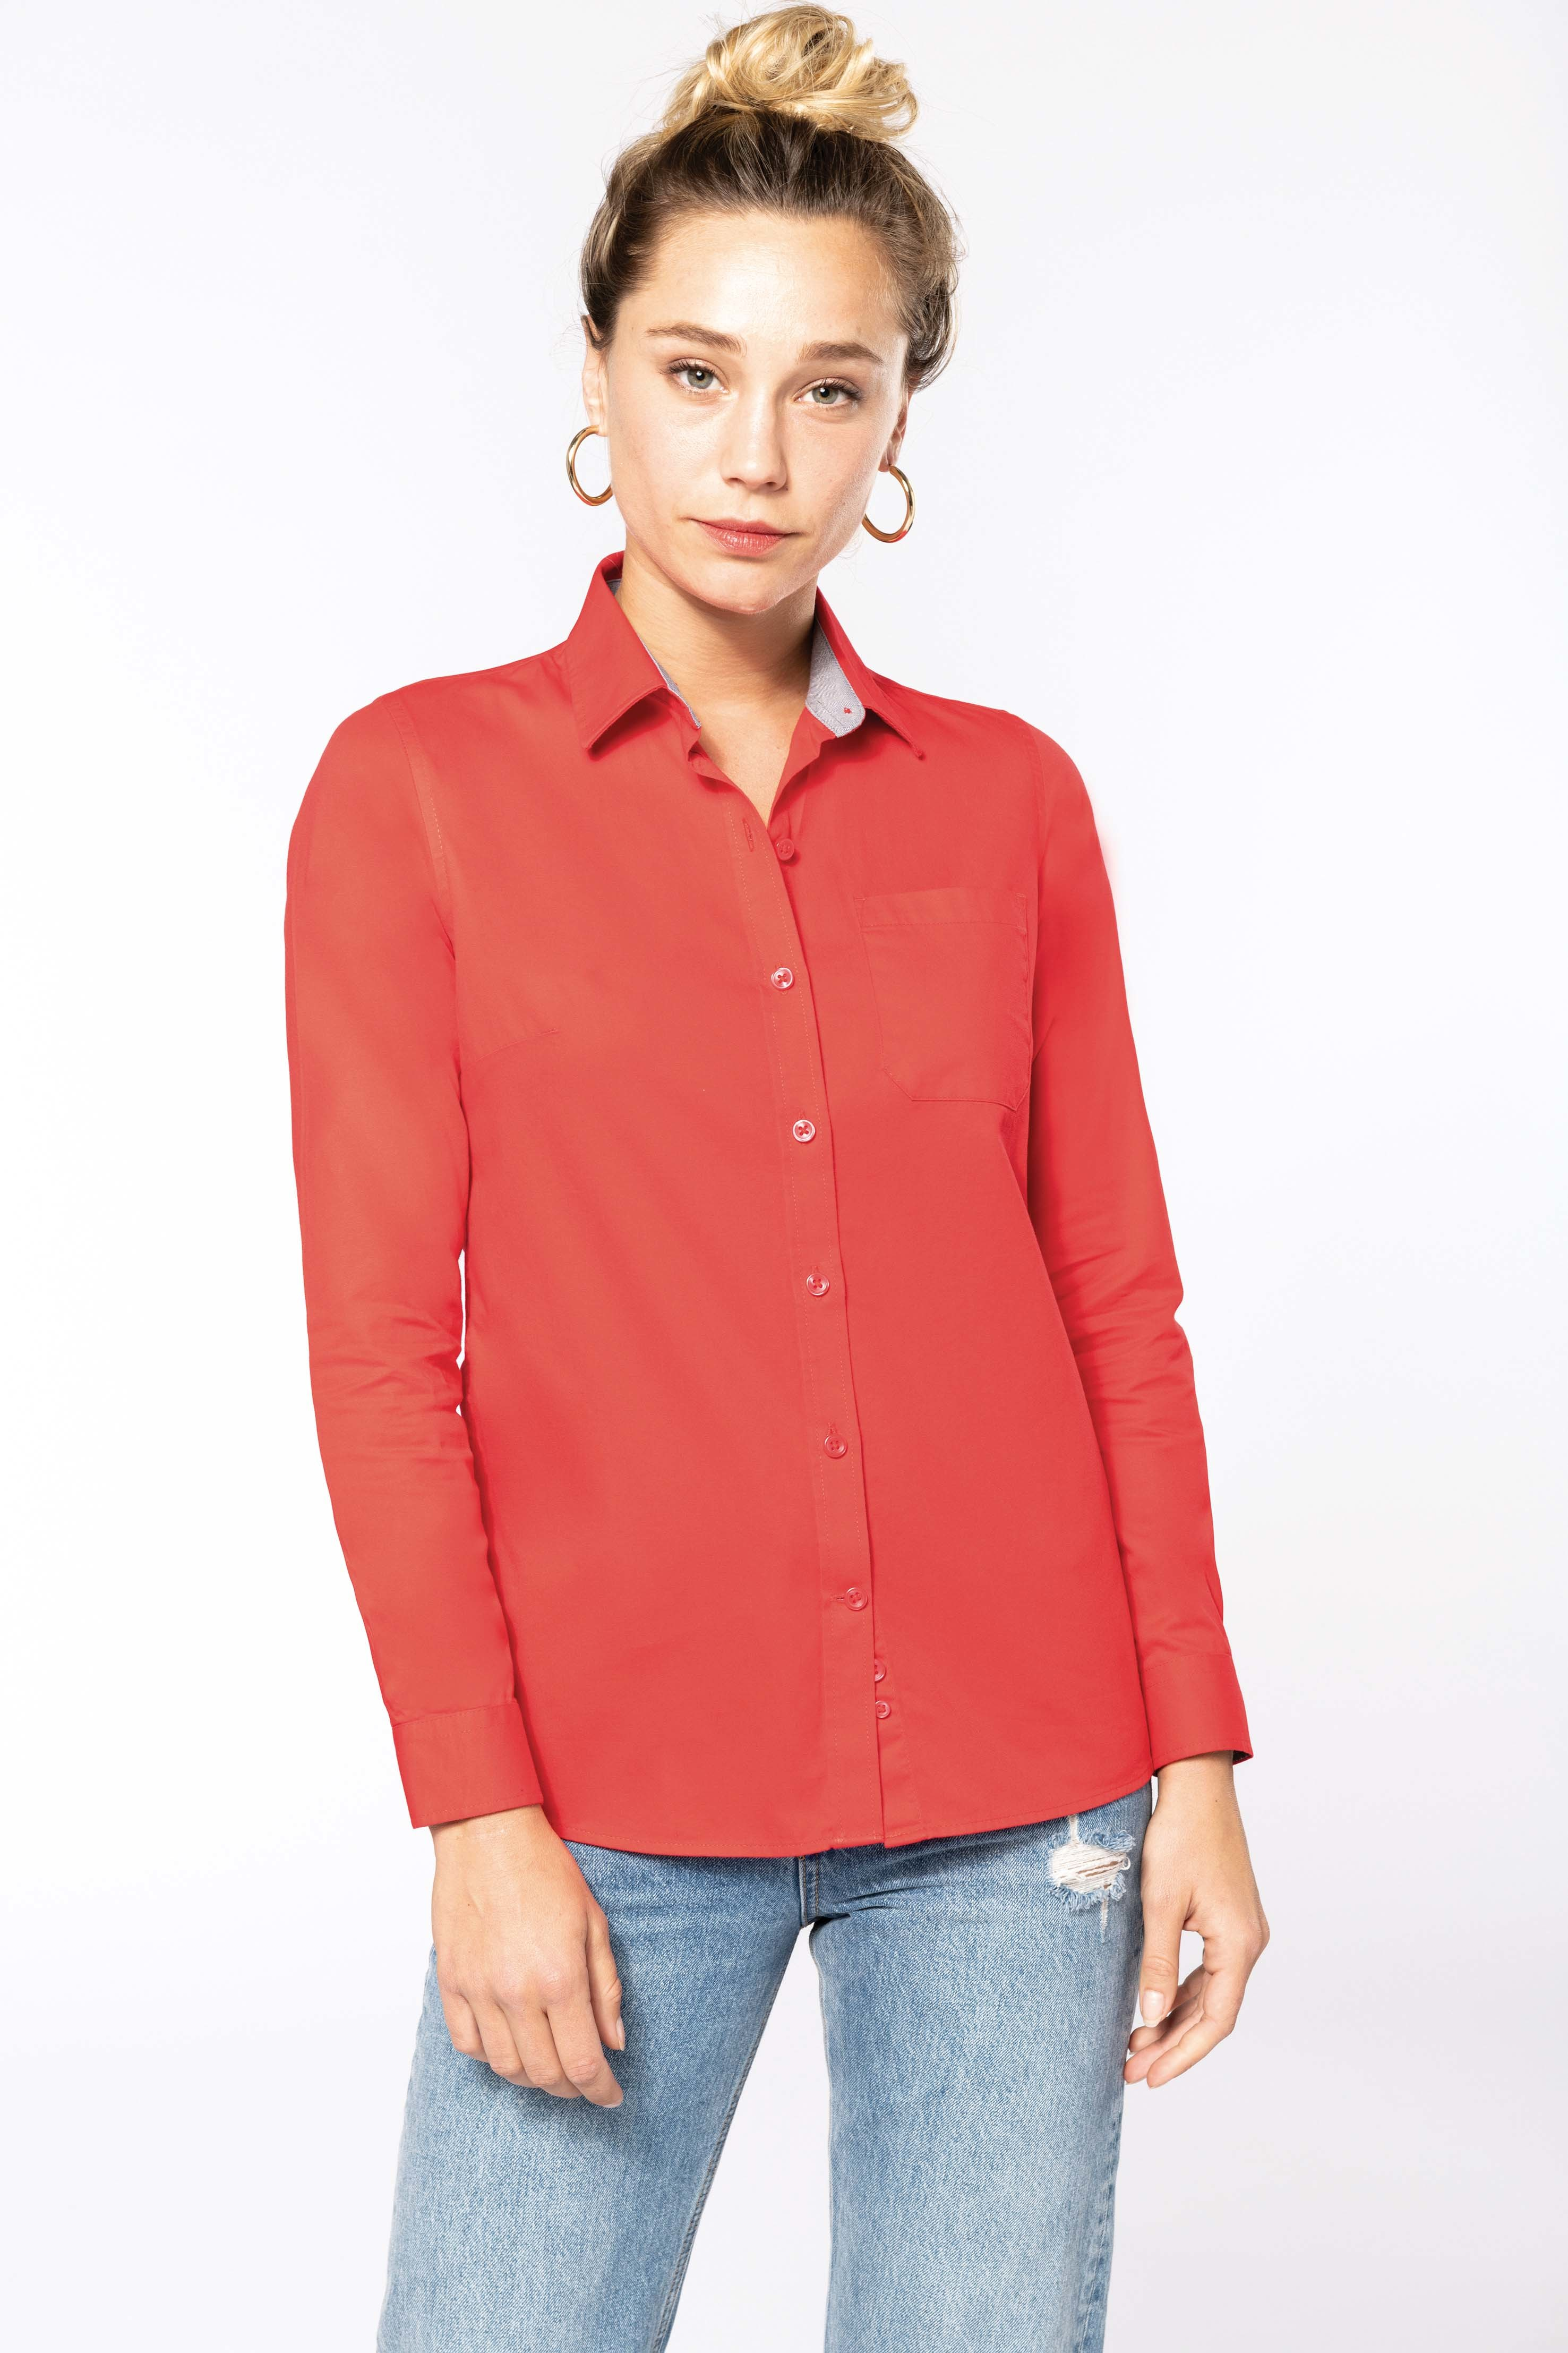 Chemise coton Nevada manches longues femme - 2-1551-4